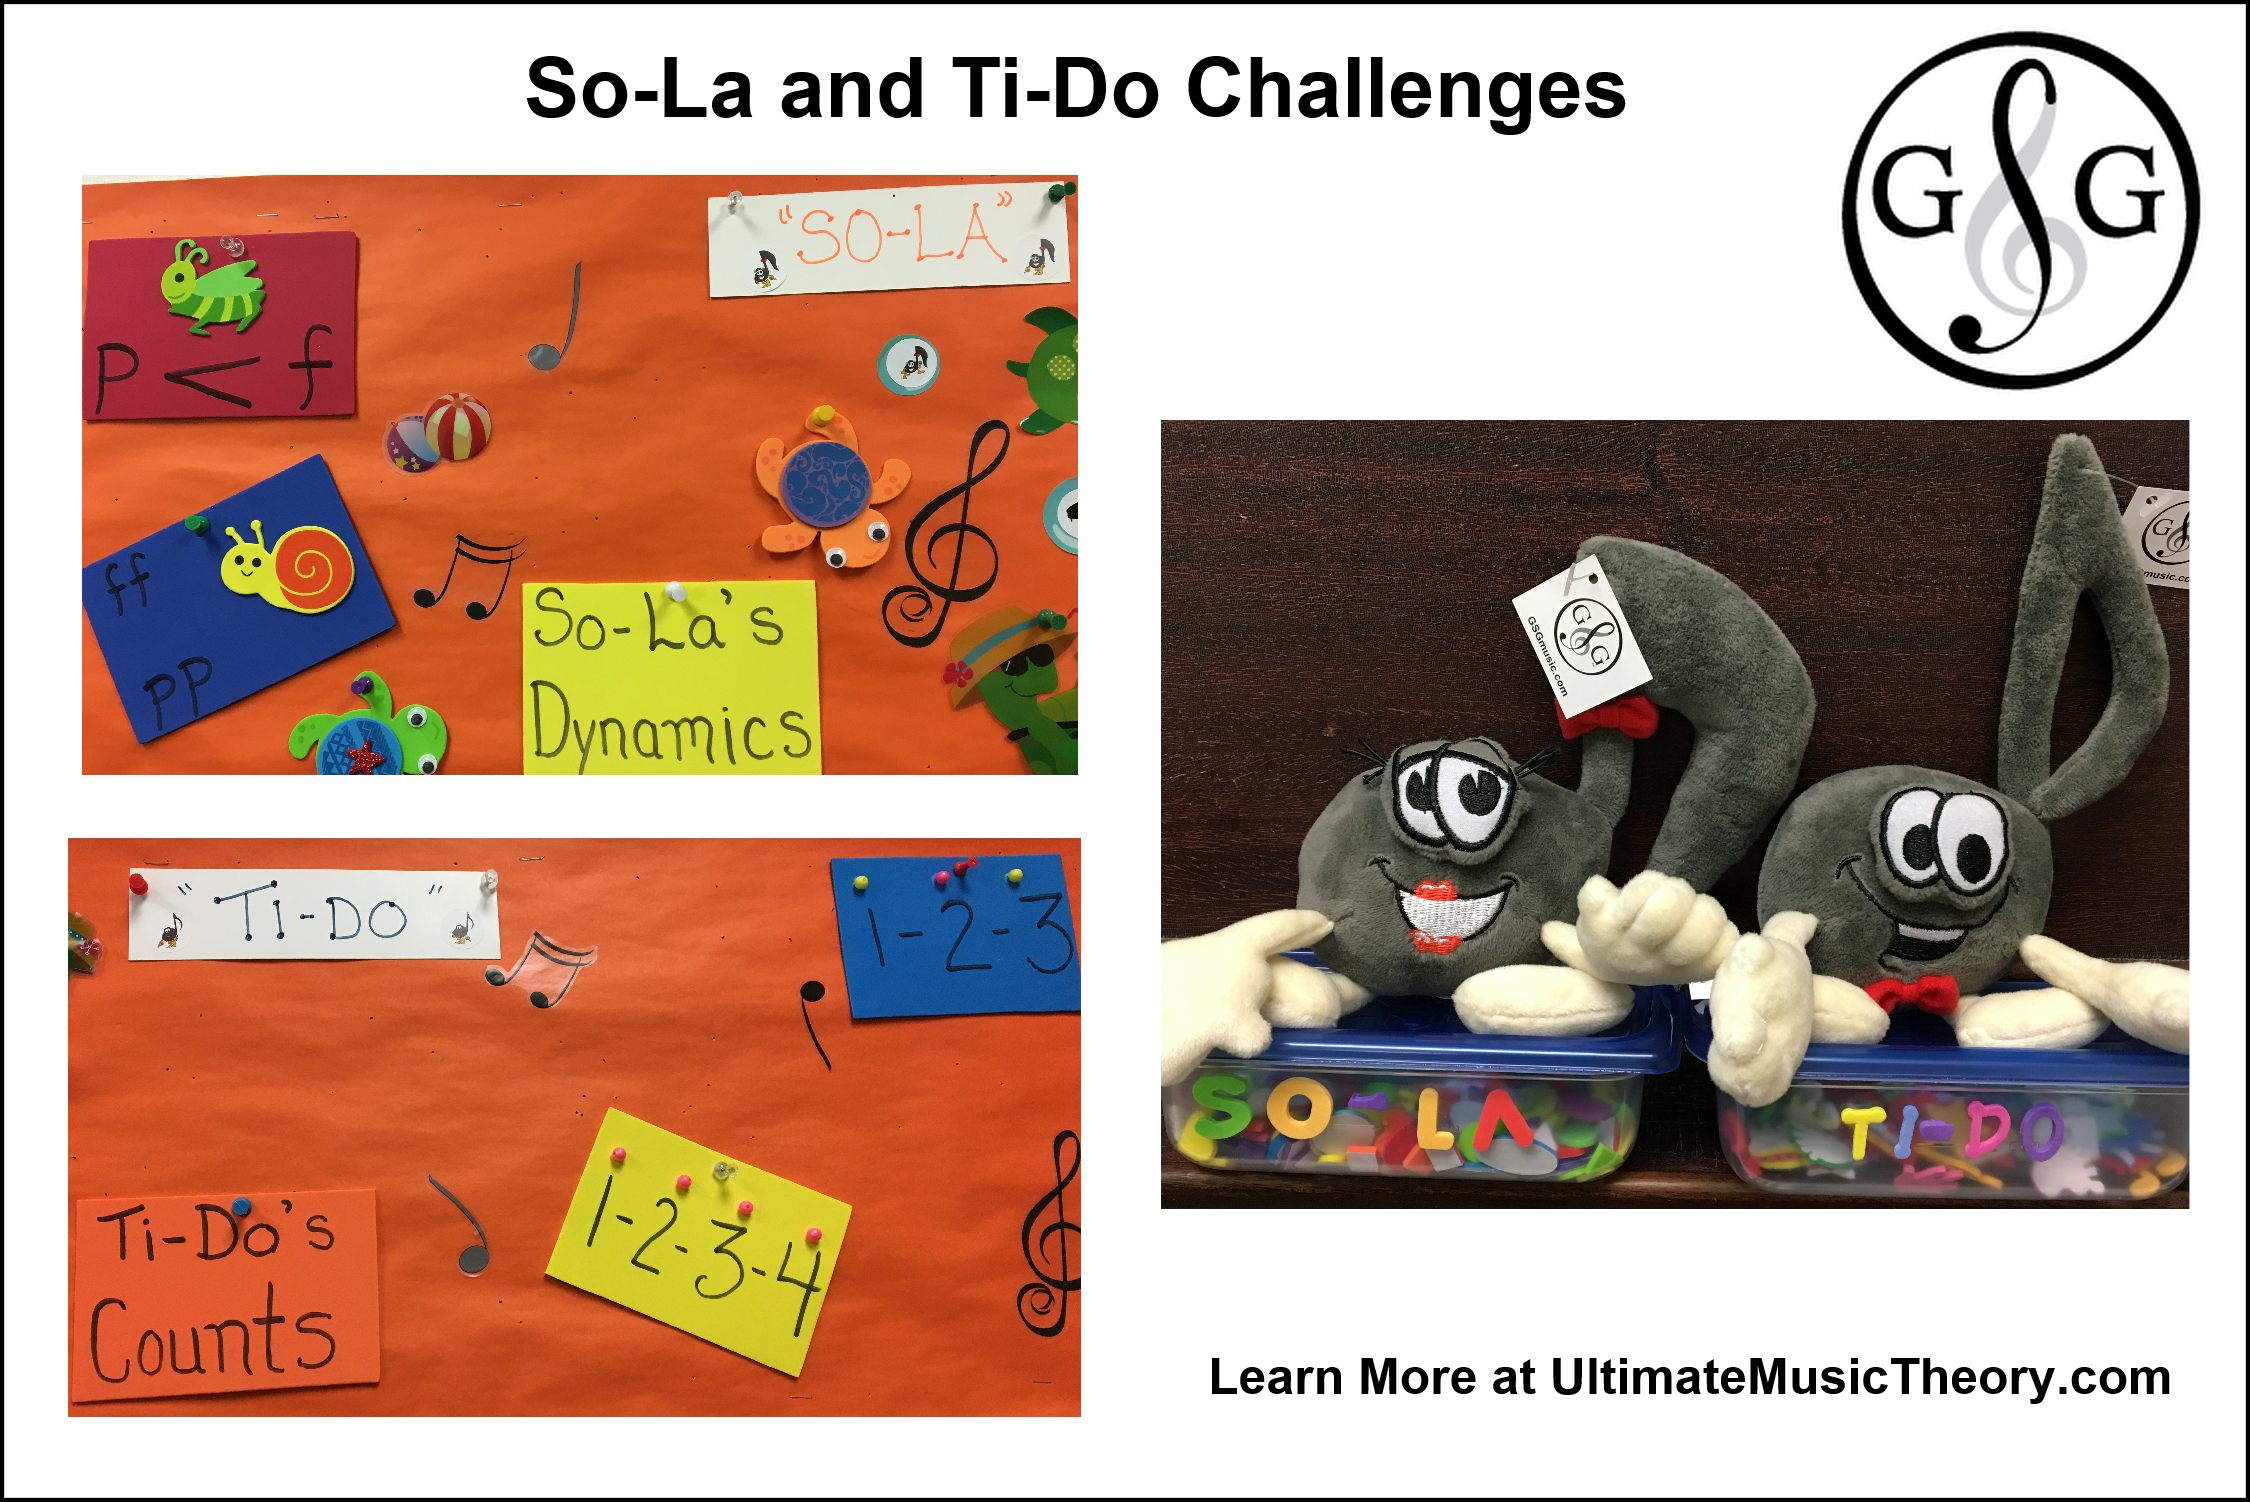 UMT - So-La and Ti-Do Challenges